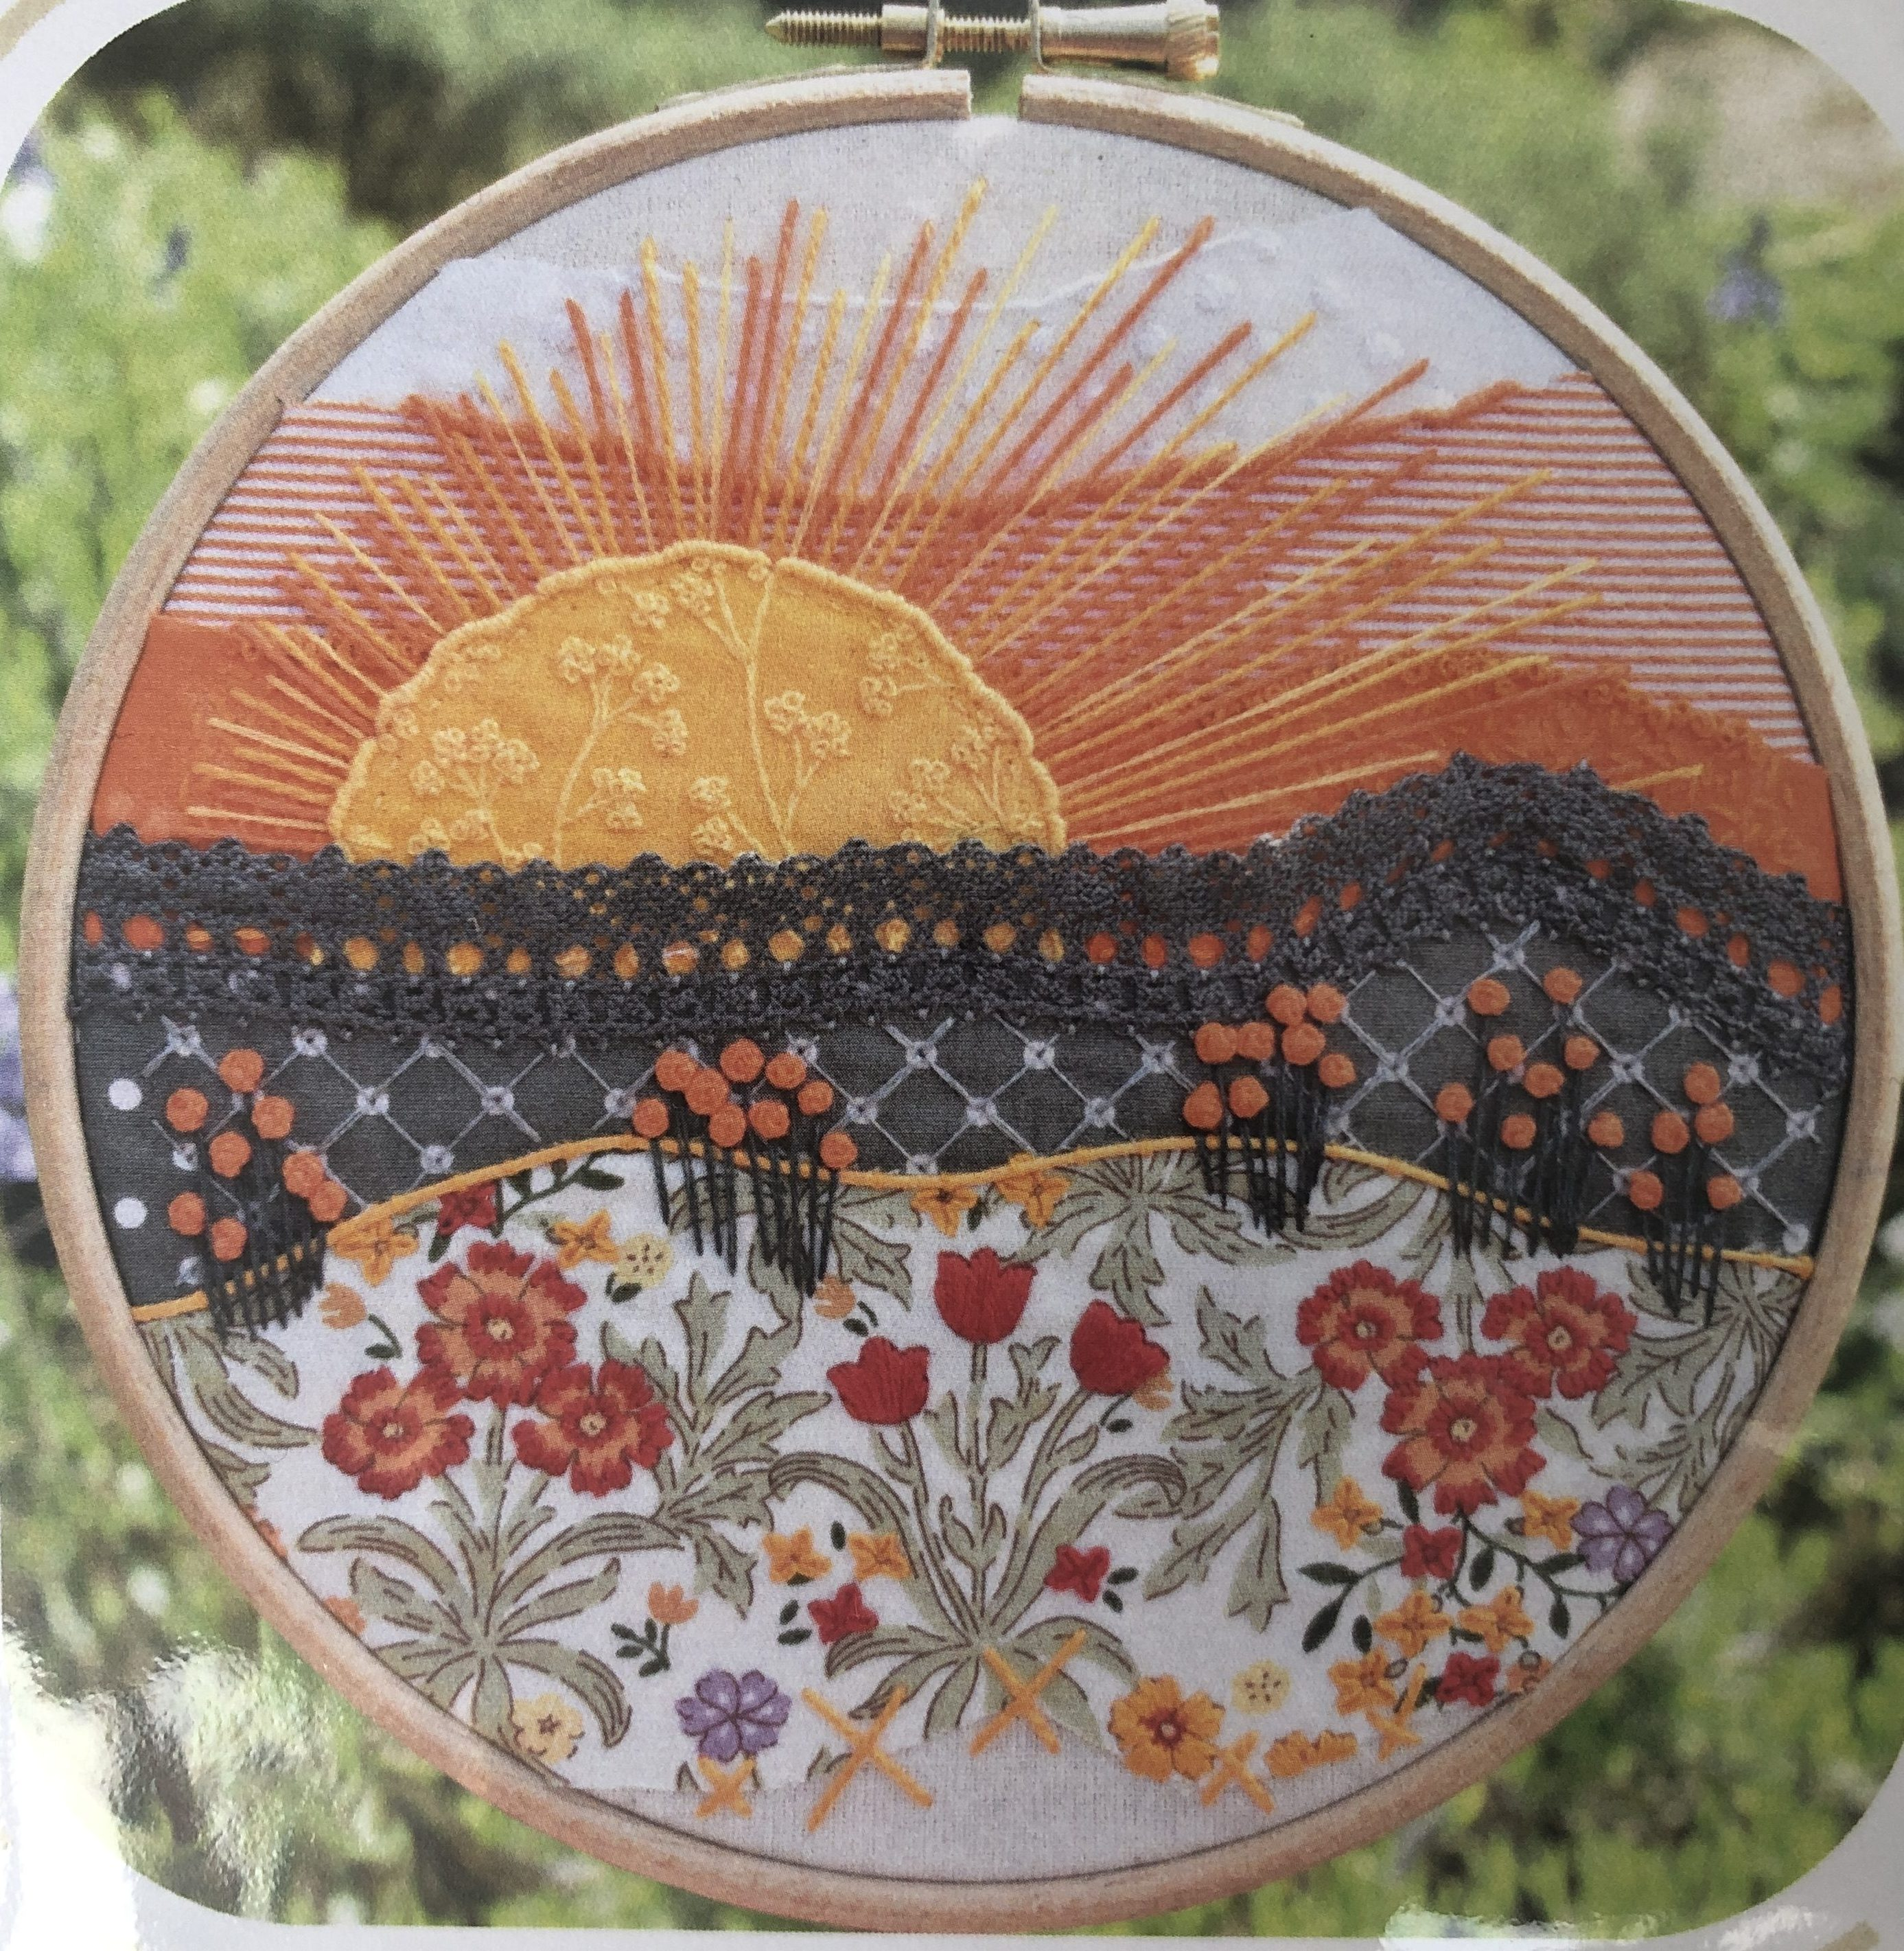 Stitchscape Fire Flower Embroidery Kit